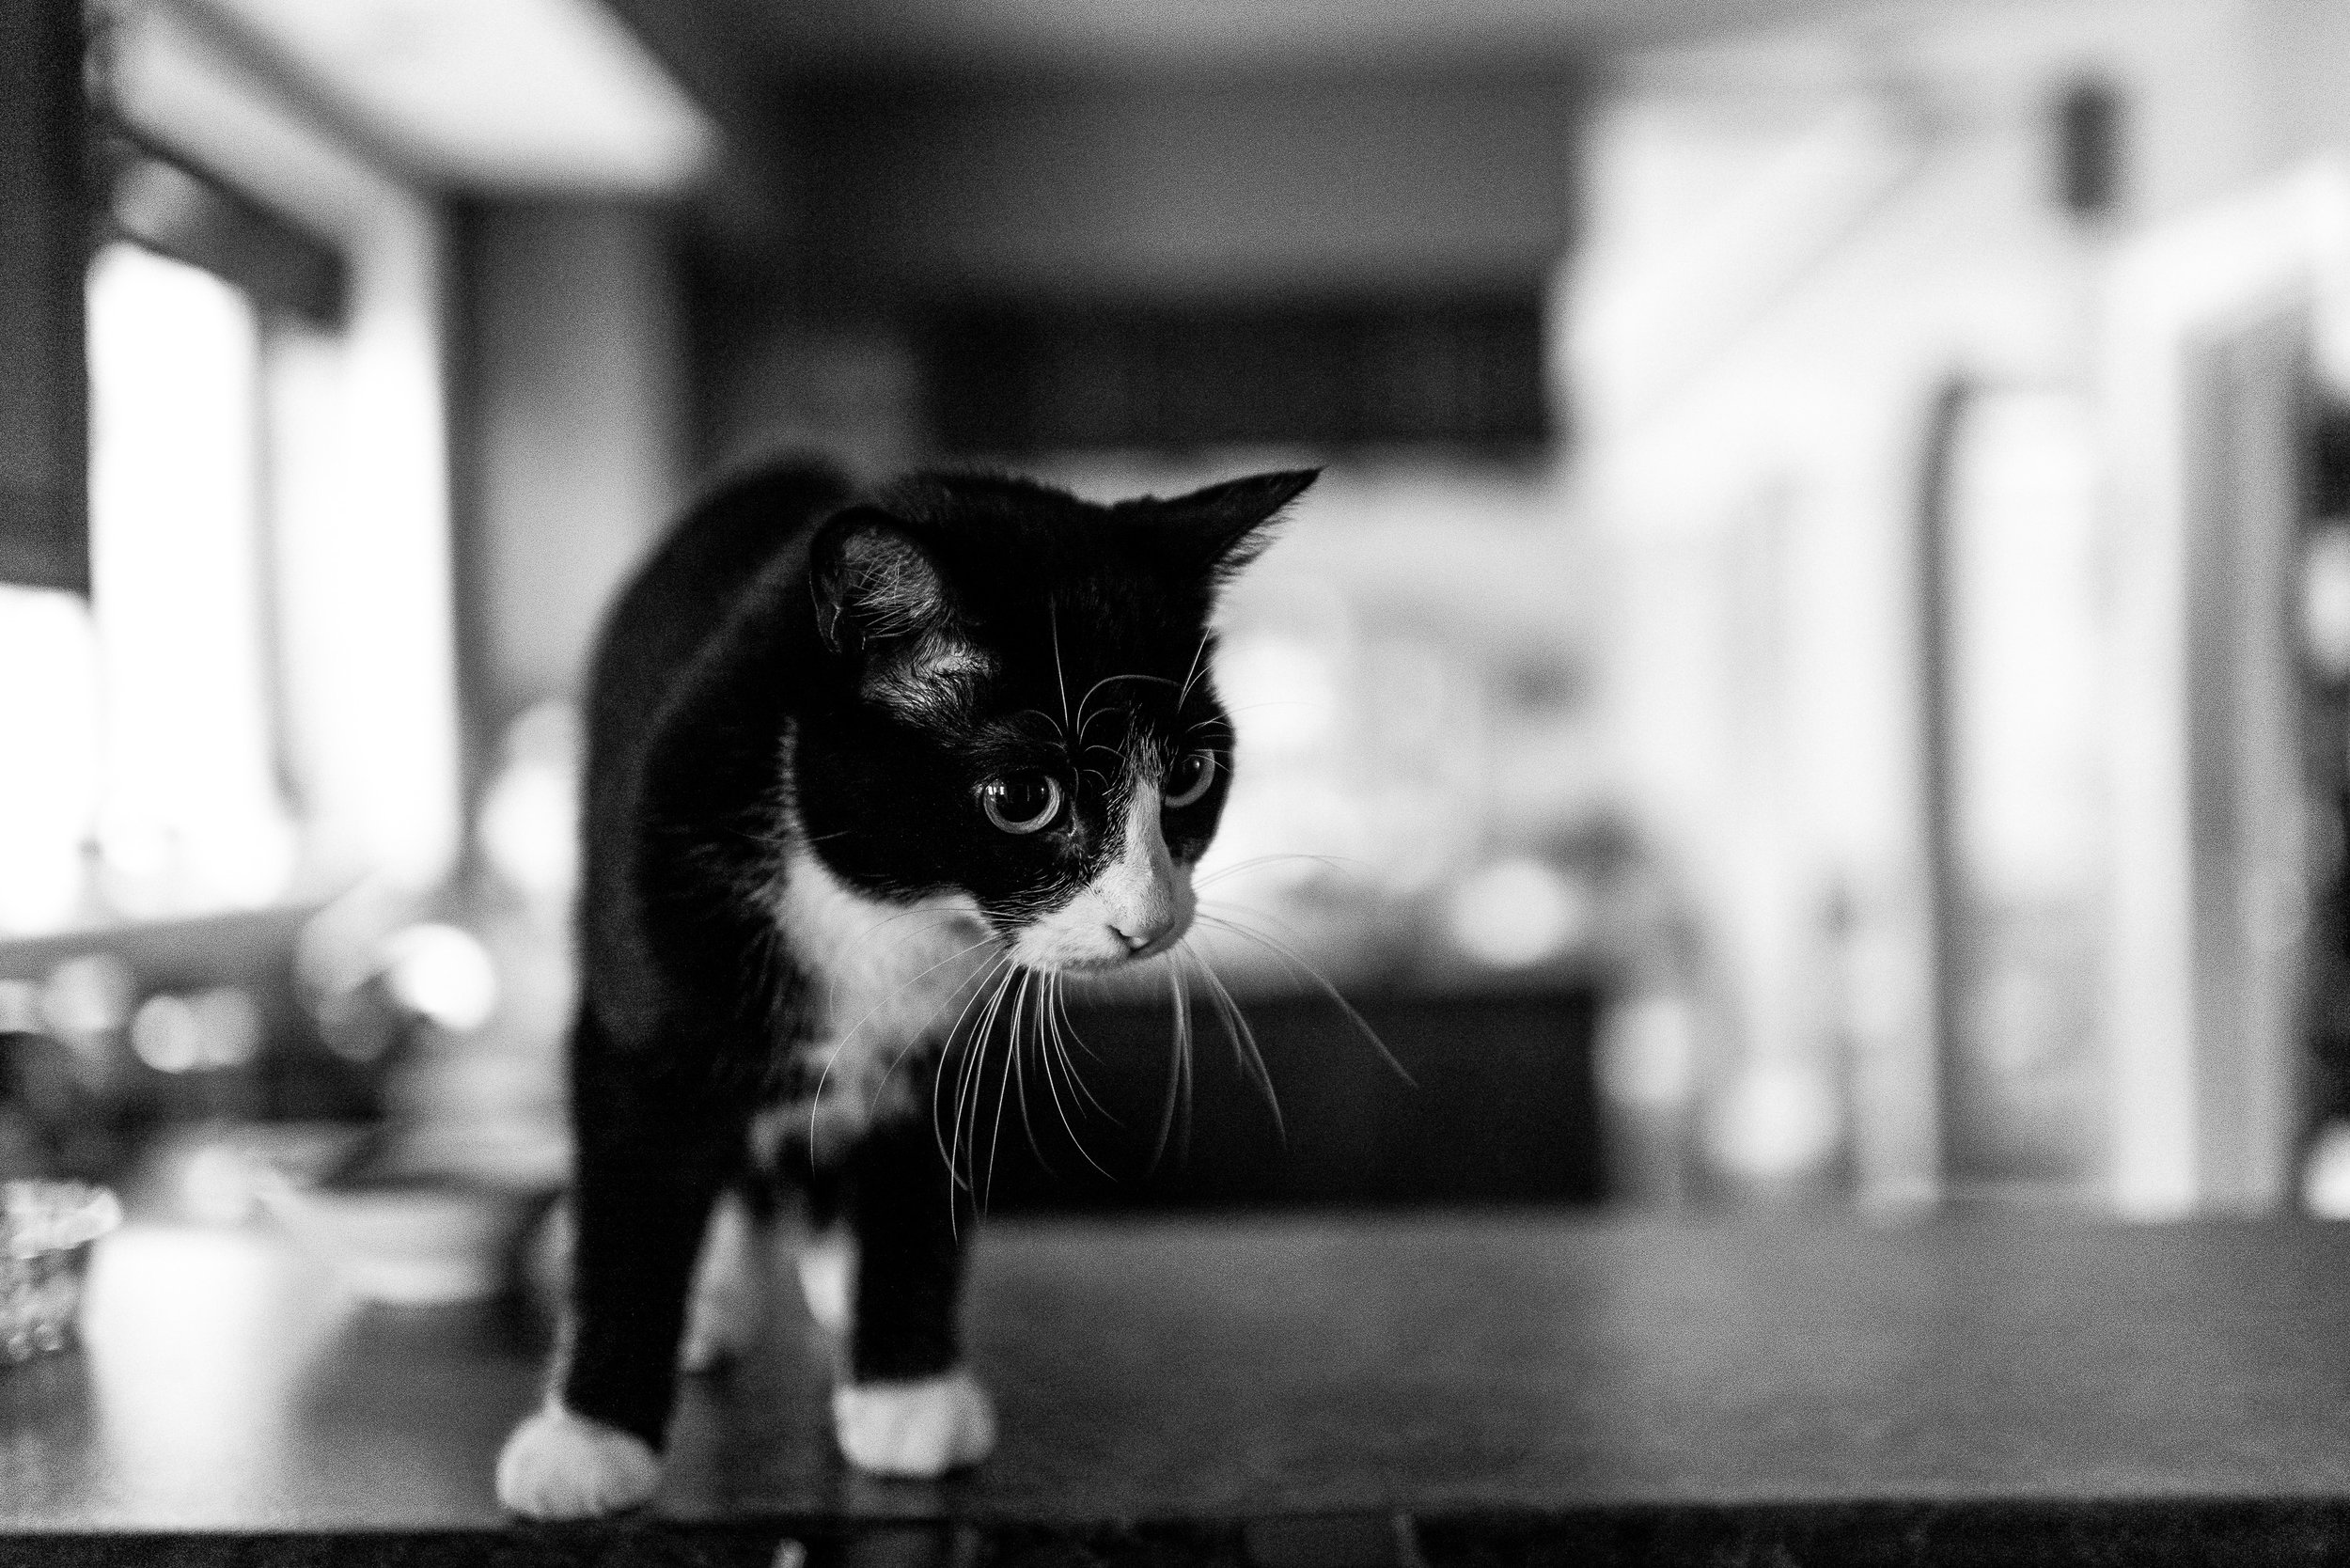 family documentary photography with cats and dogs-100740vm.jpg